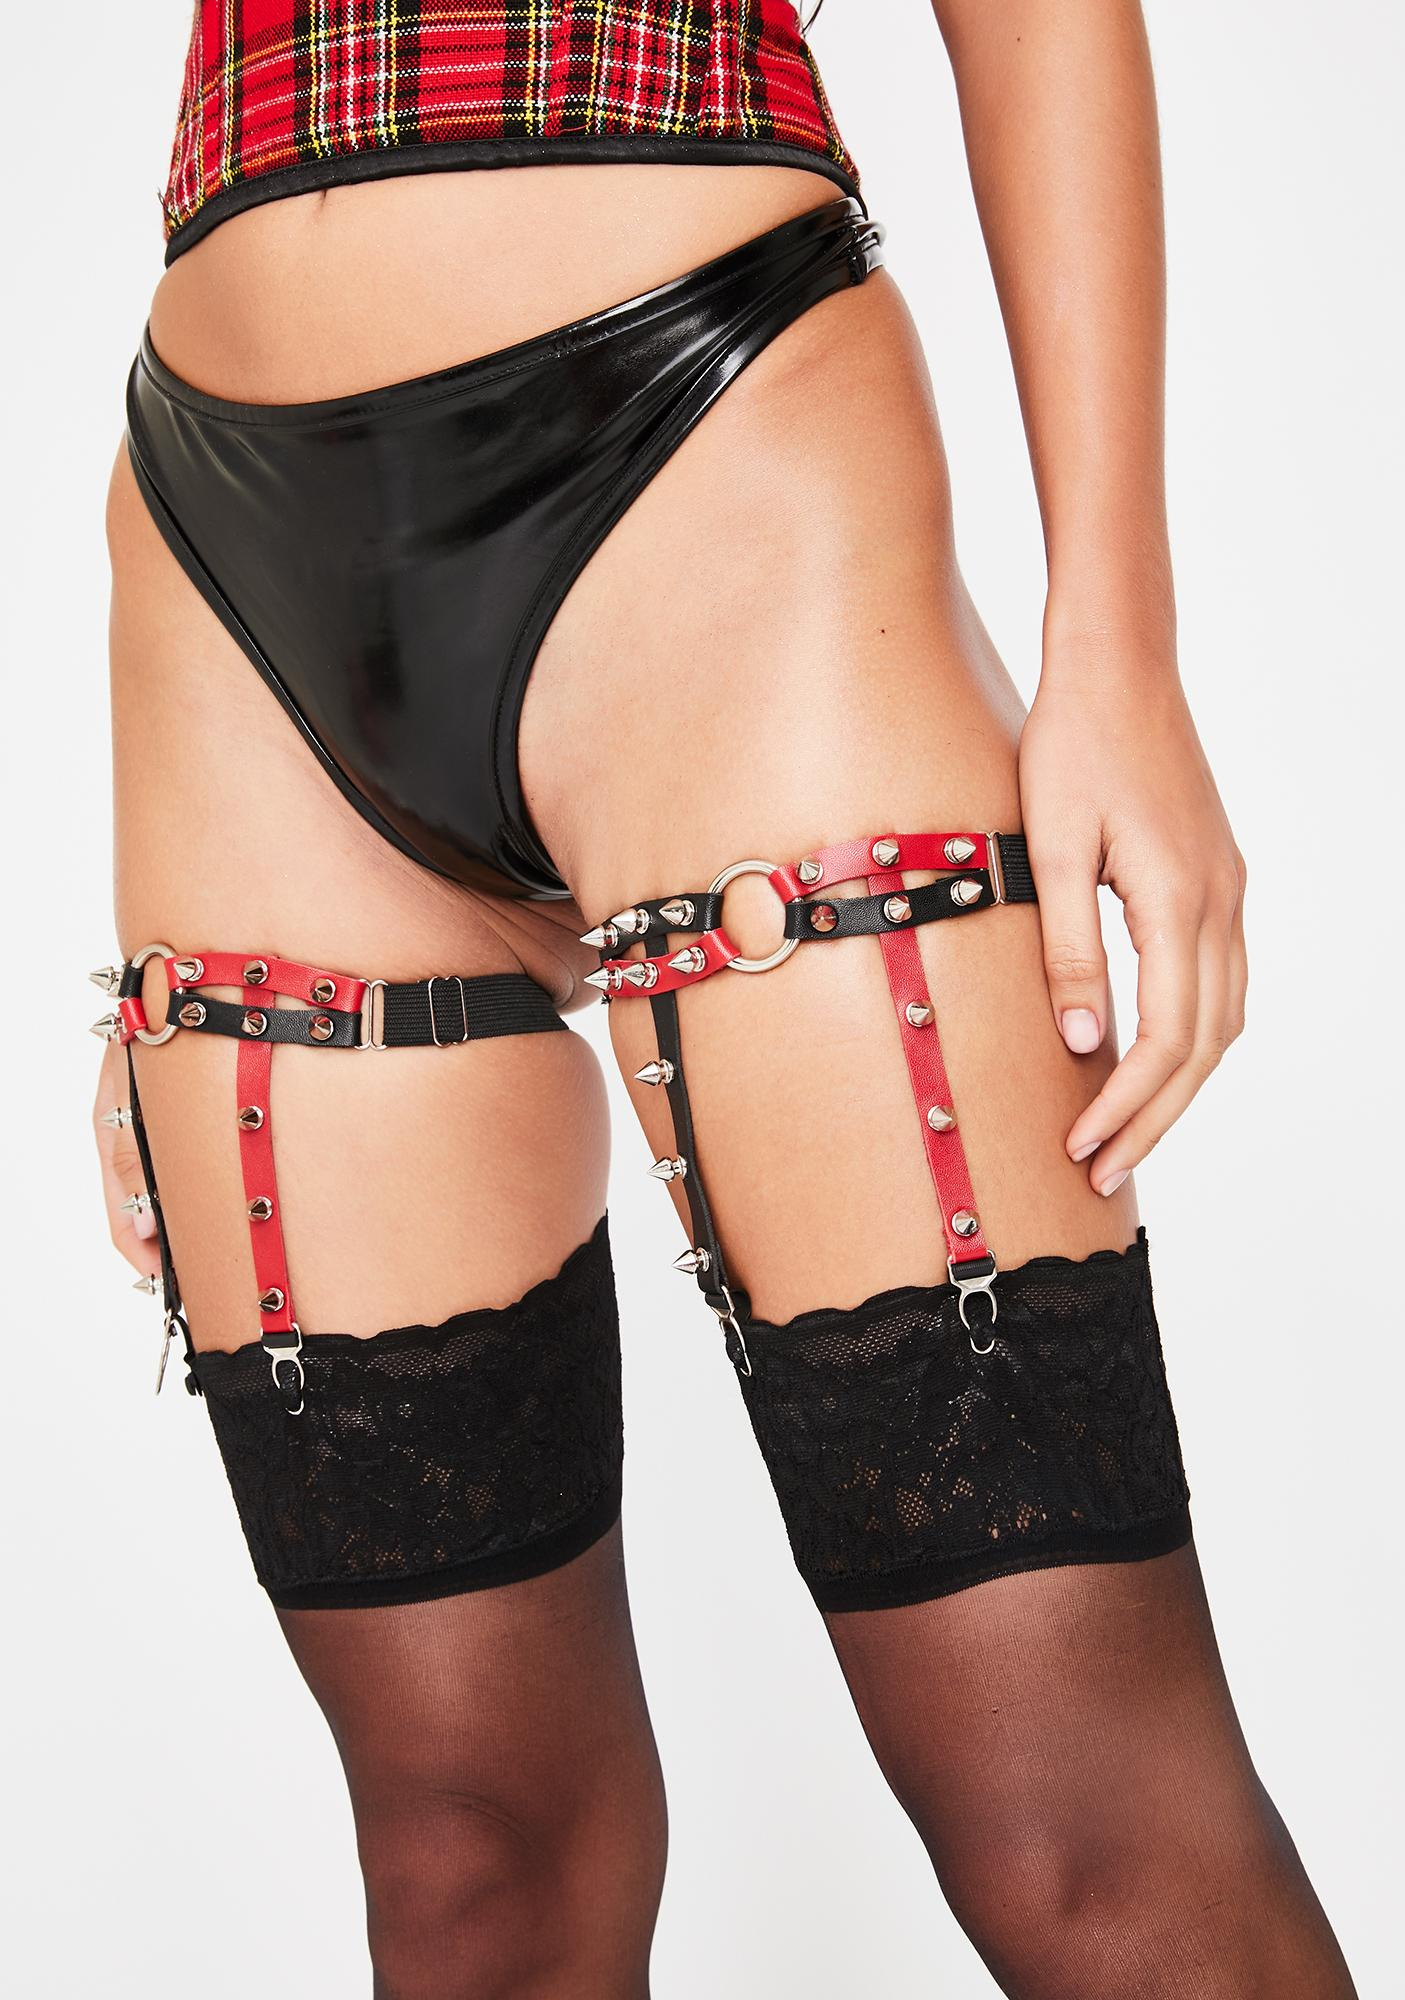 Harsh Intentions Garter Set